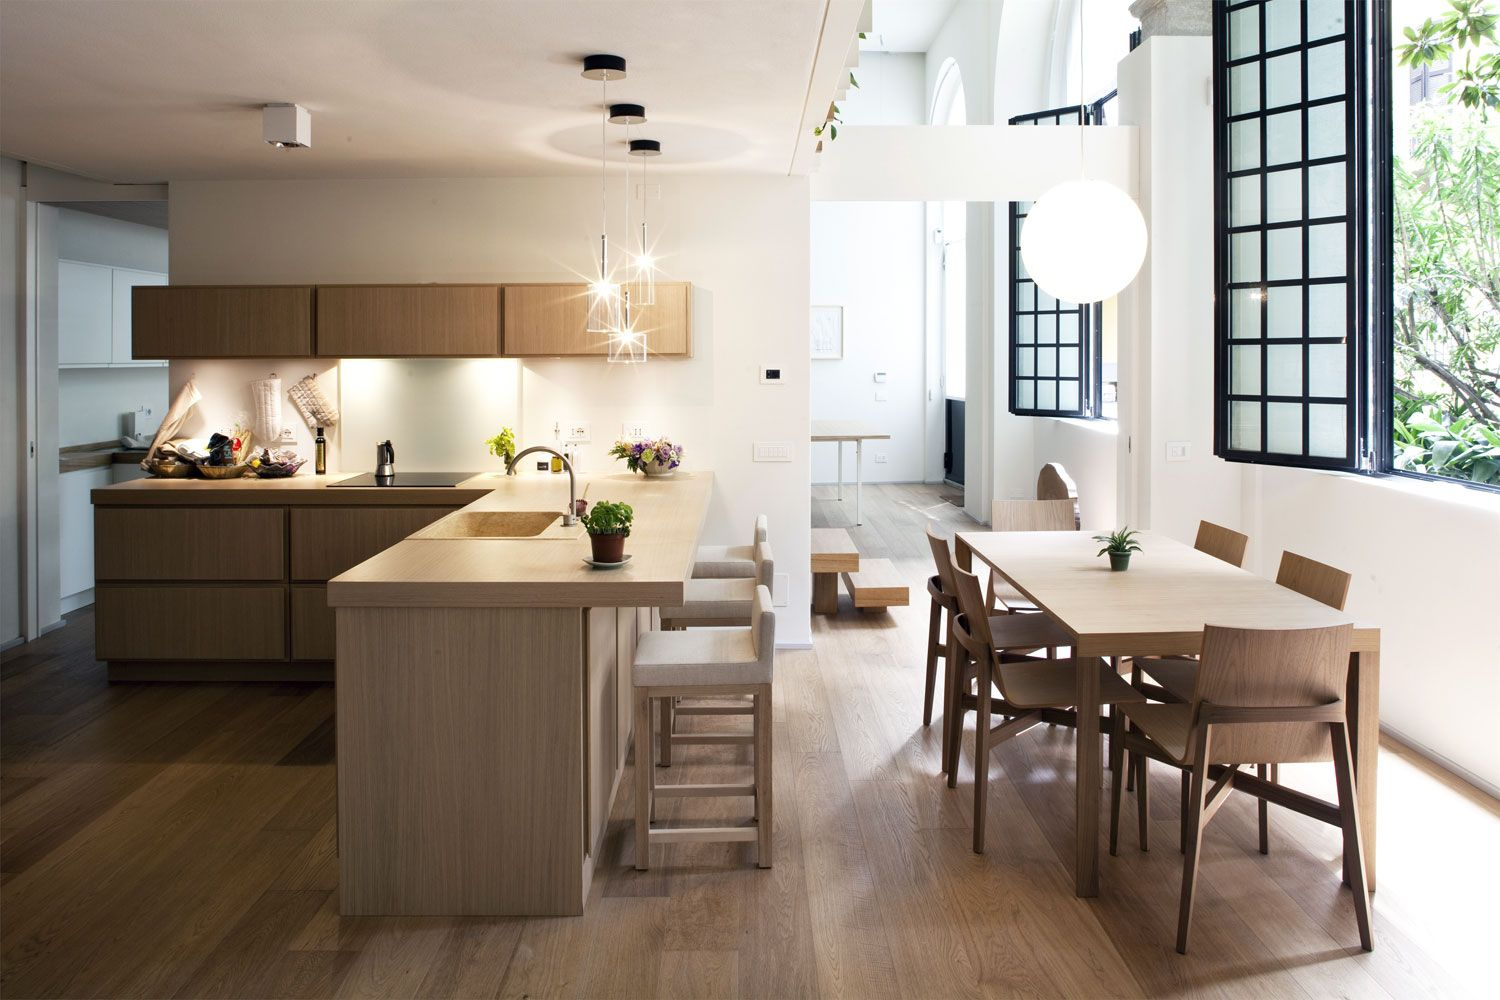 ... Blog ^ 1000+ Images About Deco_gypsum Ceiling And Lighting On Pinterest  ... ^ Ngaging Modern Eiling Design For Dining Oom Nd Kitchen ... Part 29